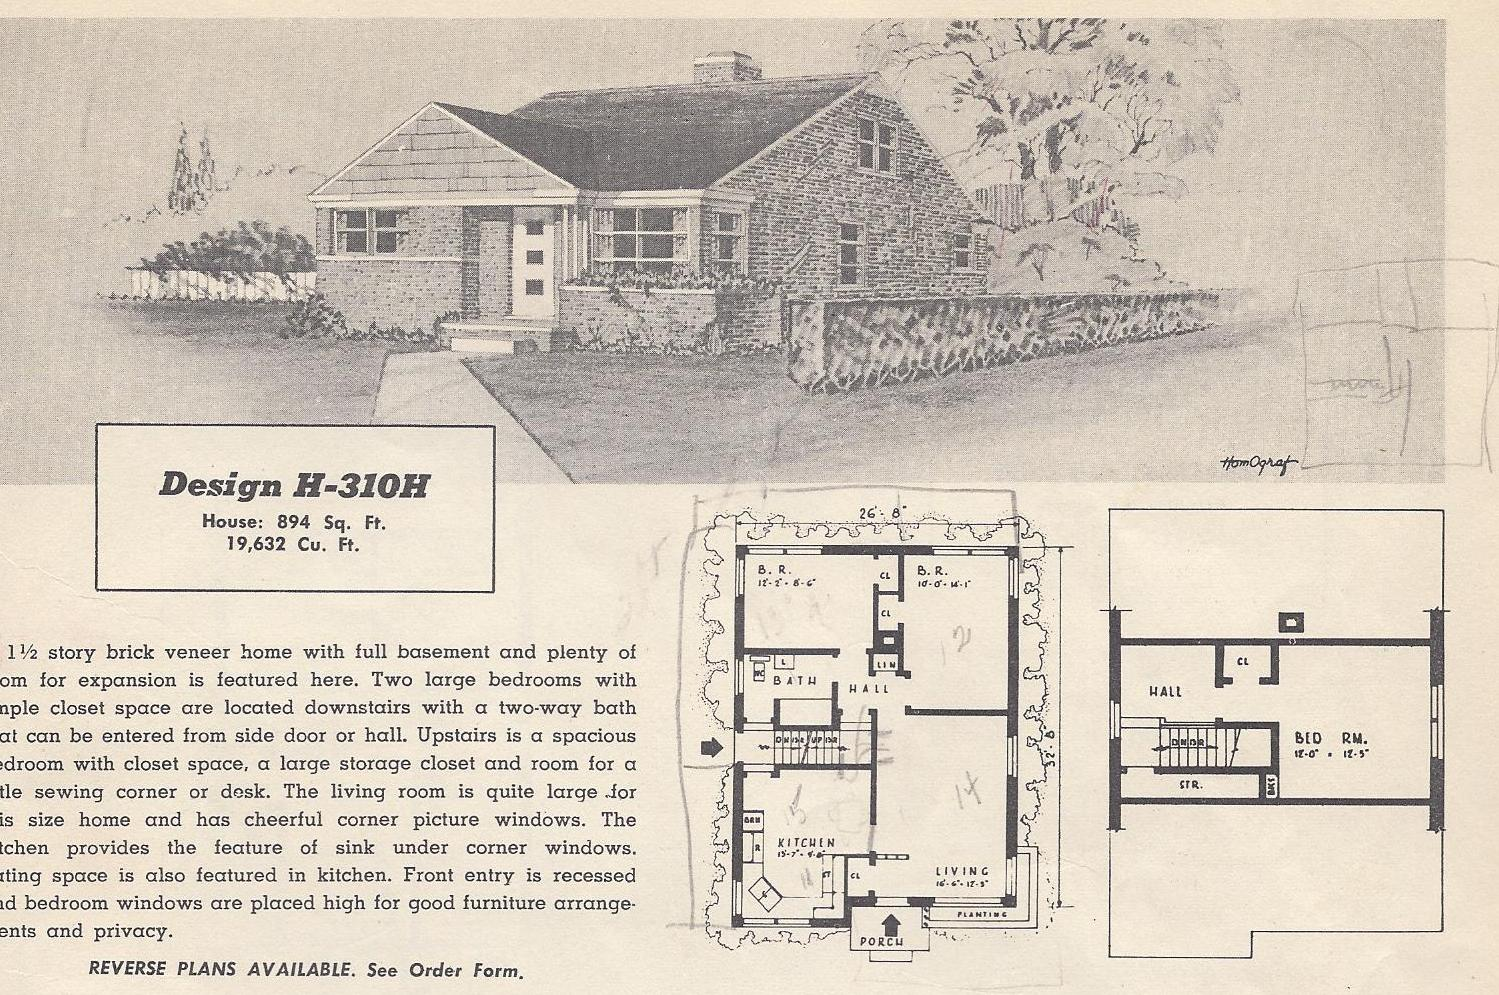 Vintage house plans 310h antique alter ego for Vintage ranch house plans